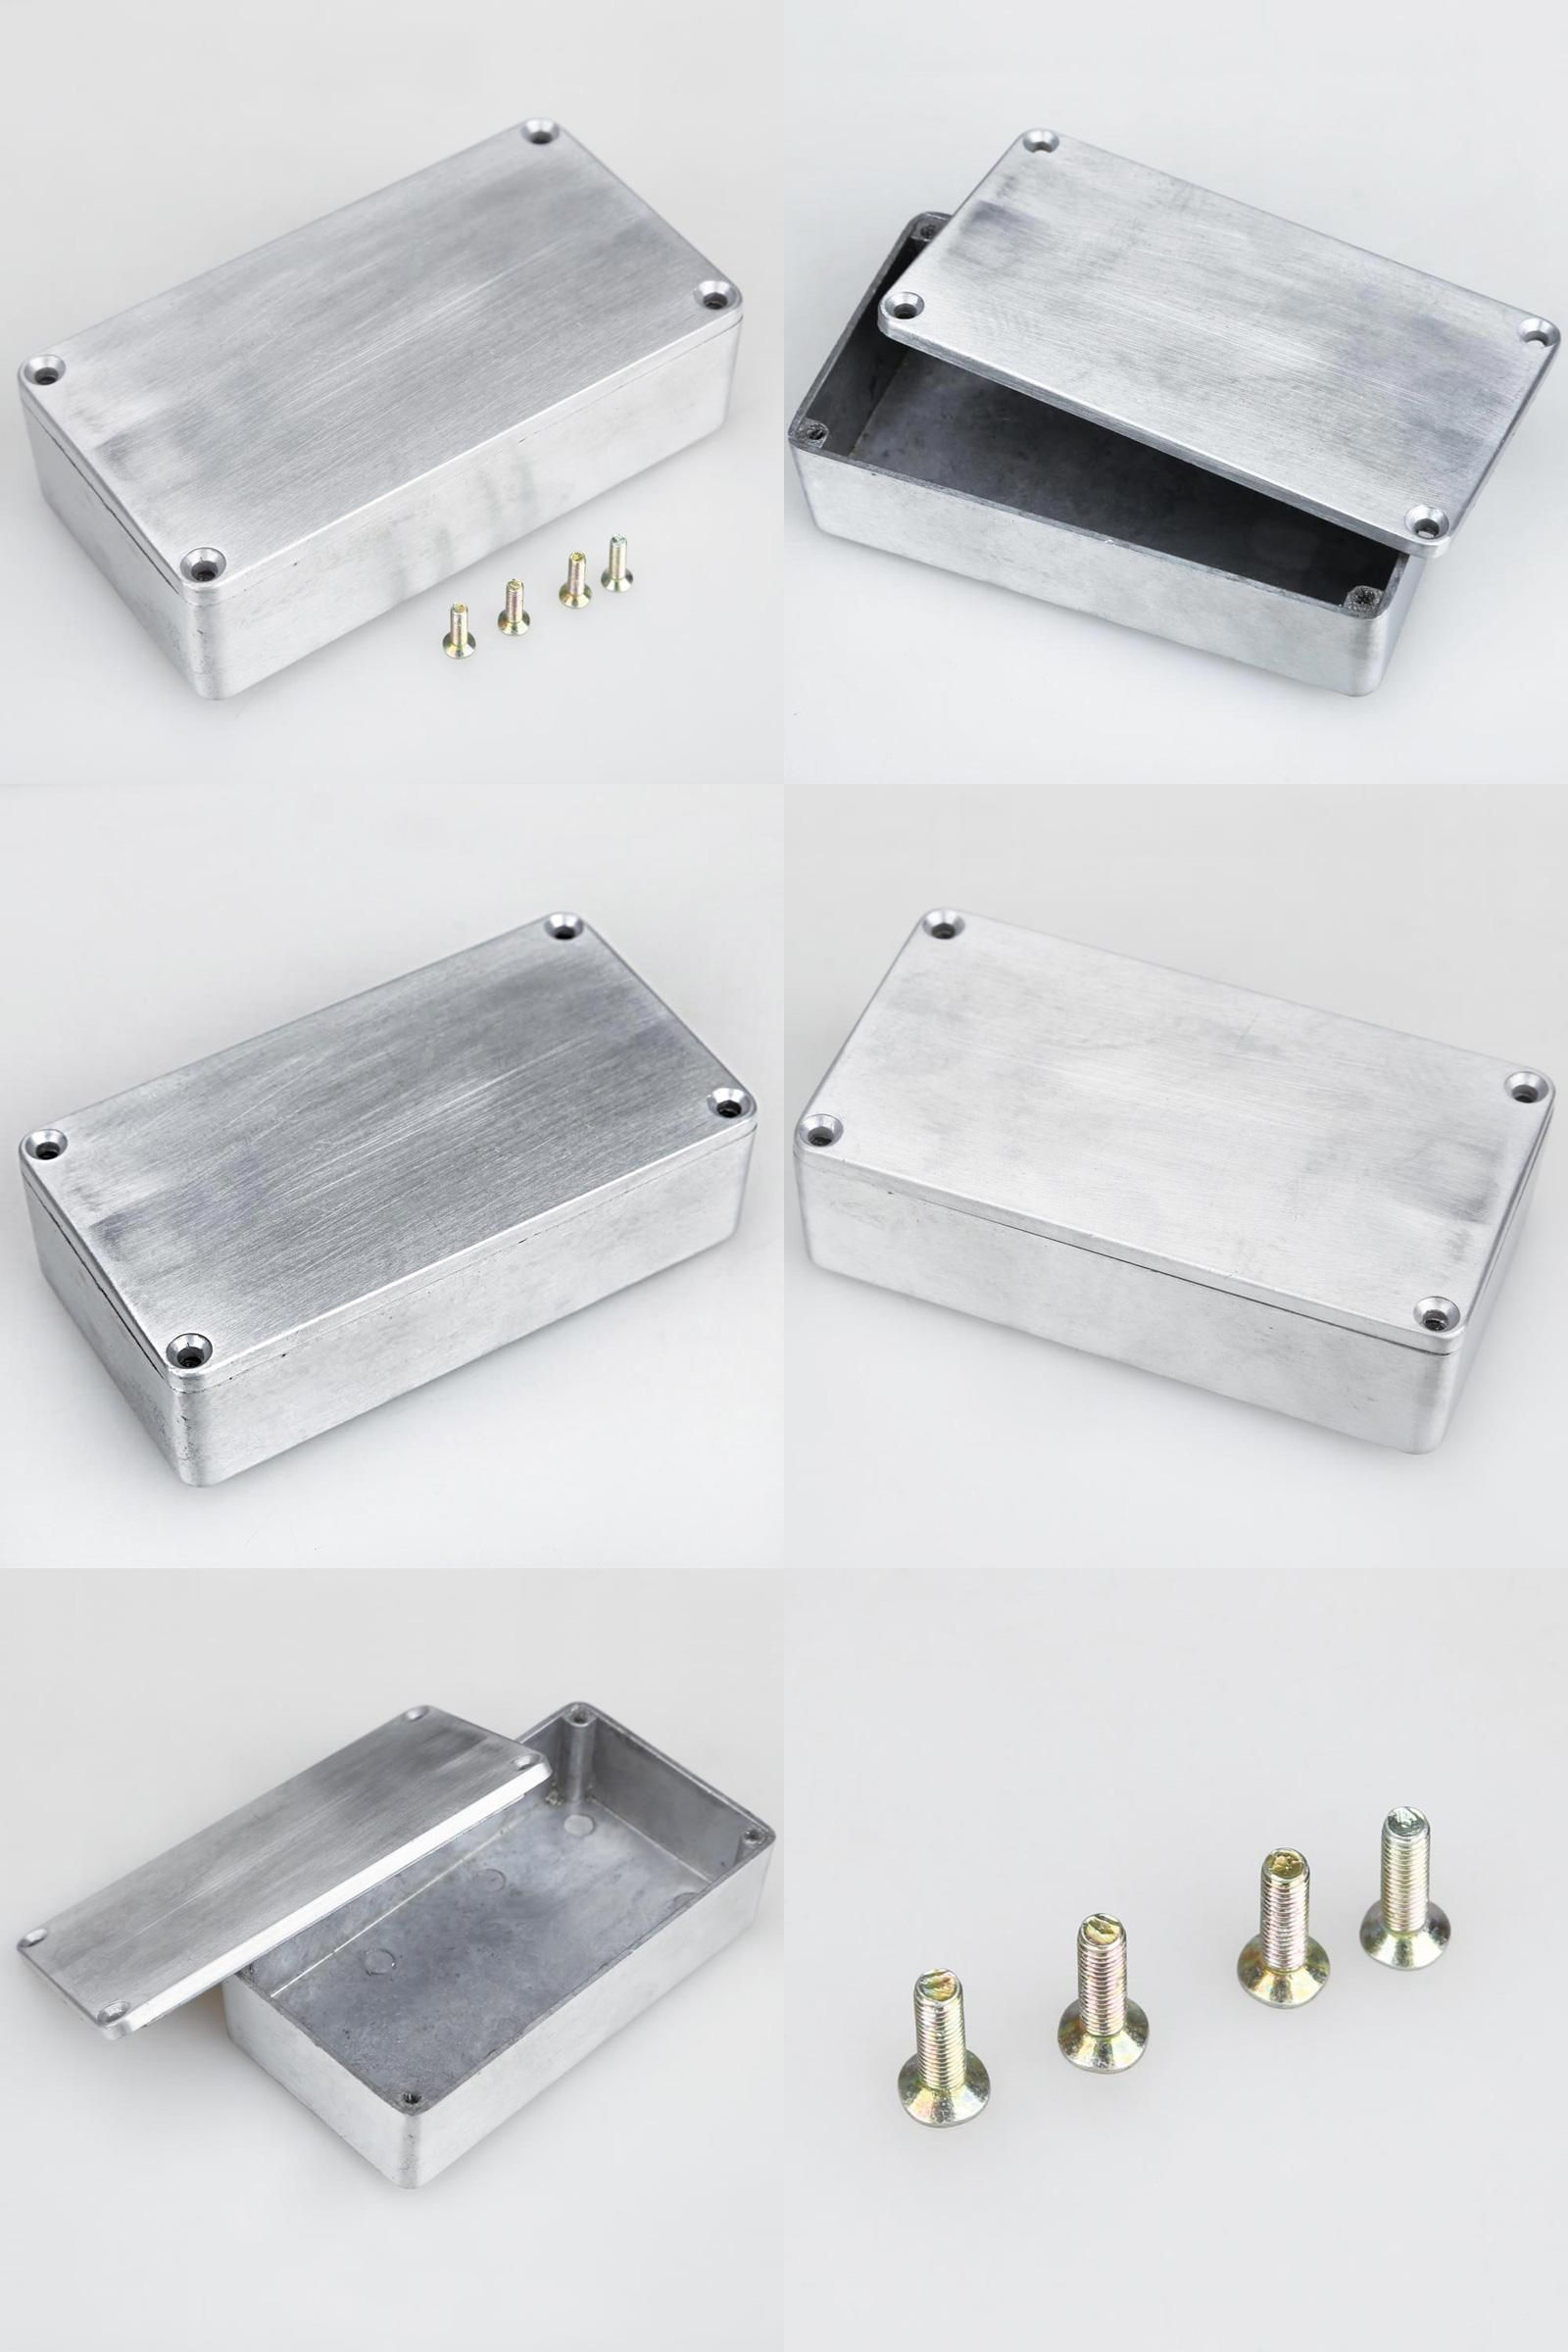 3df1f3f223 [Visit to Buy] New Design 1590B Style Effects Pedal Aluminum Stomp Box  Enclosure for